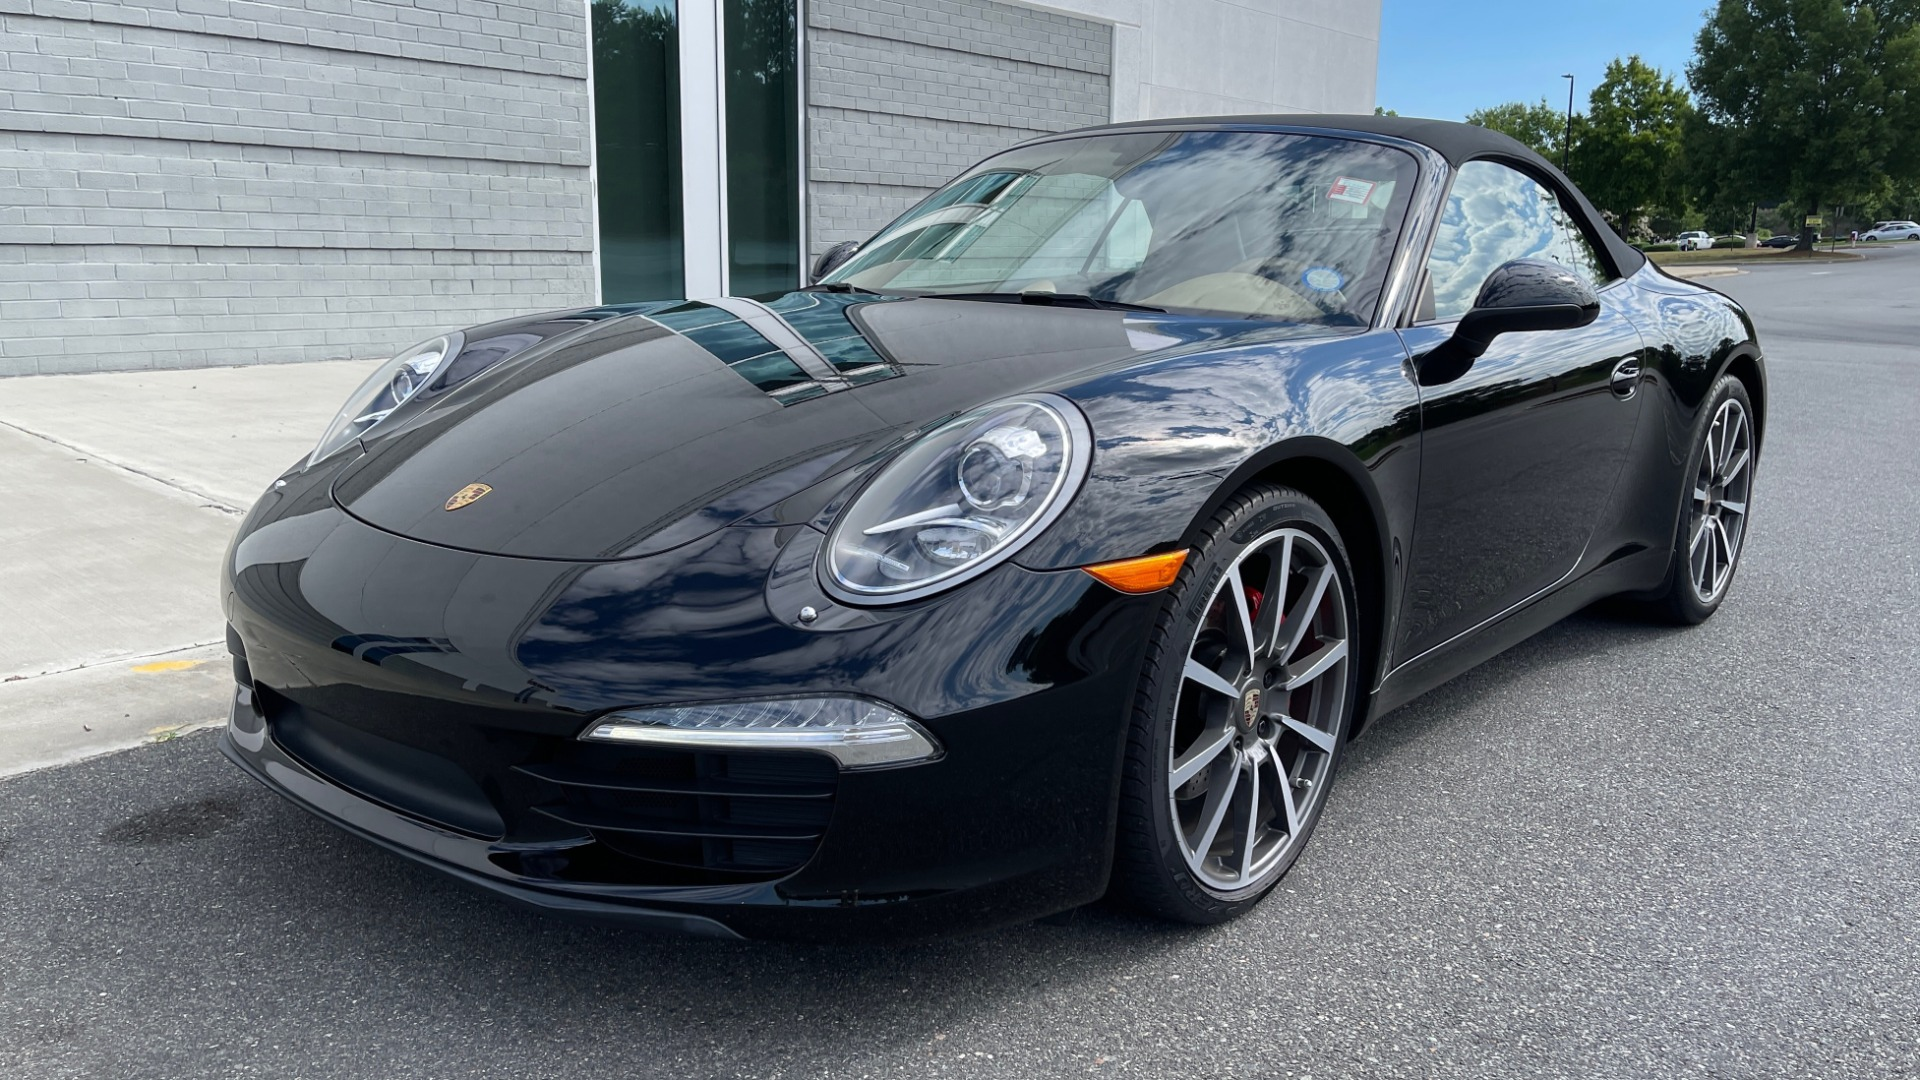 Used 2013 Porsche 911 CARRERA CABRIOLET / PDK / NAV / BOSE / HTD STS / PDLS for sale Sold at Formula Imports in Charlotte NC 28227 5